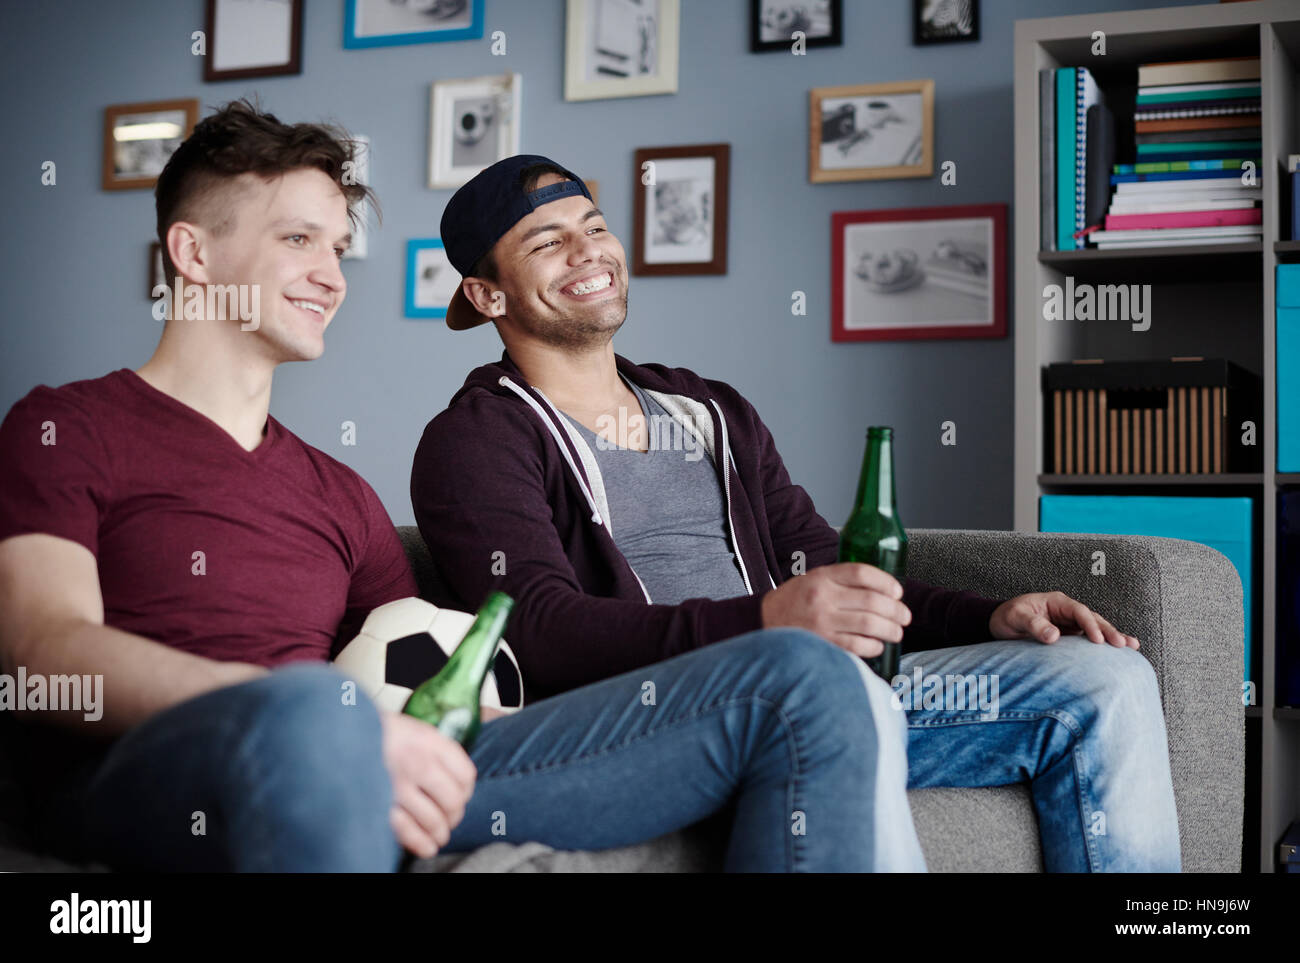 Close up of two men celebrating football game - Stock Image